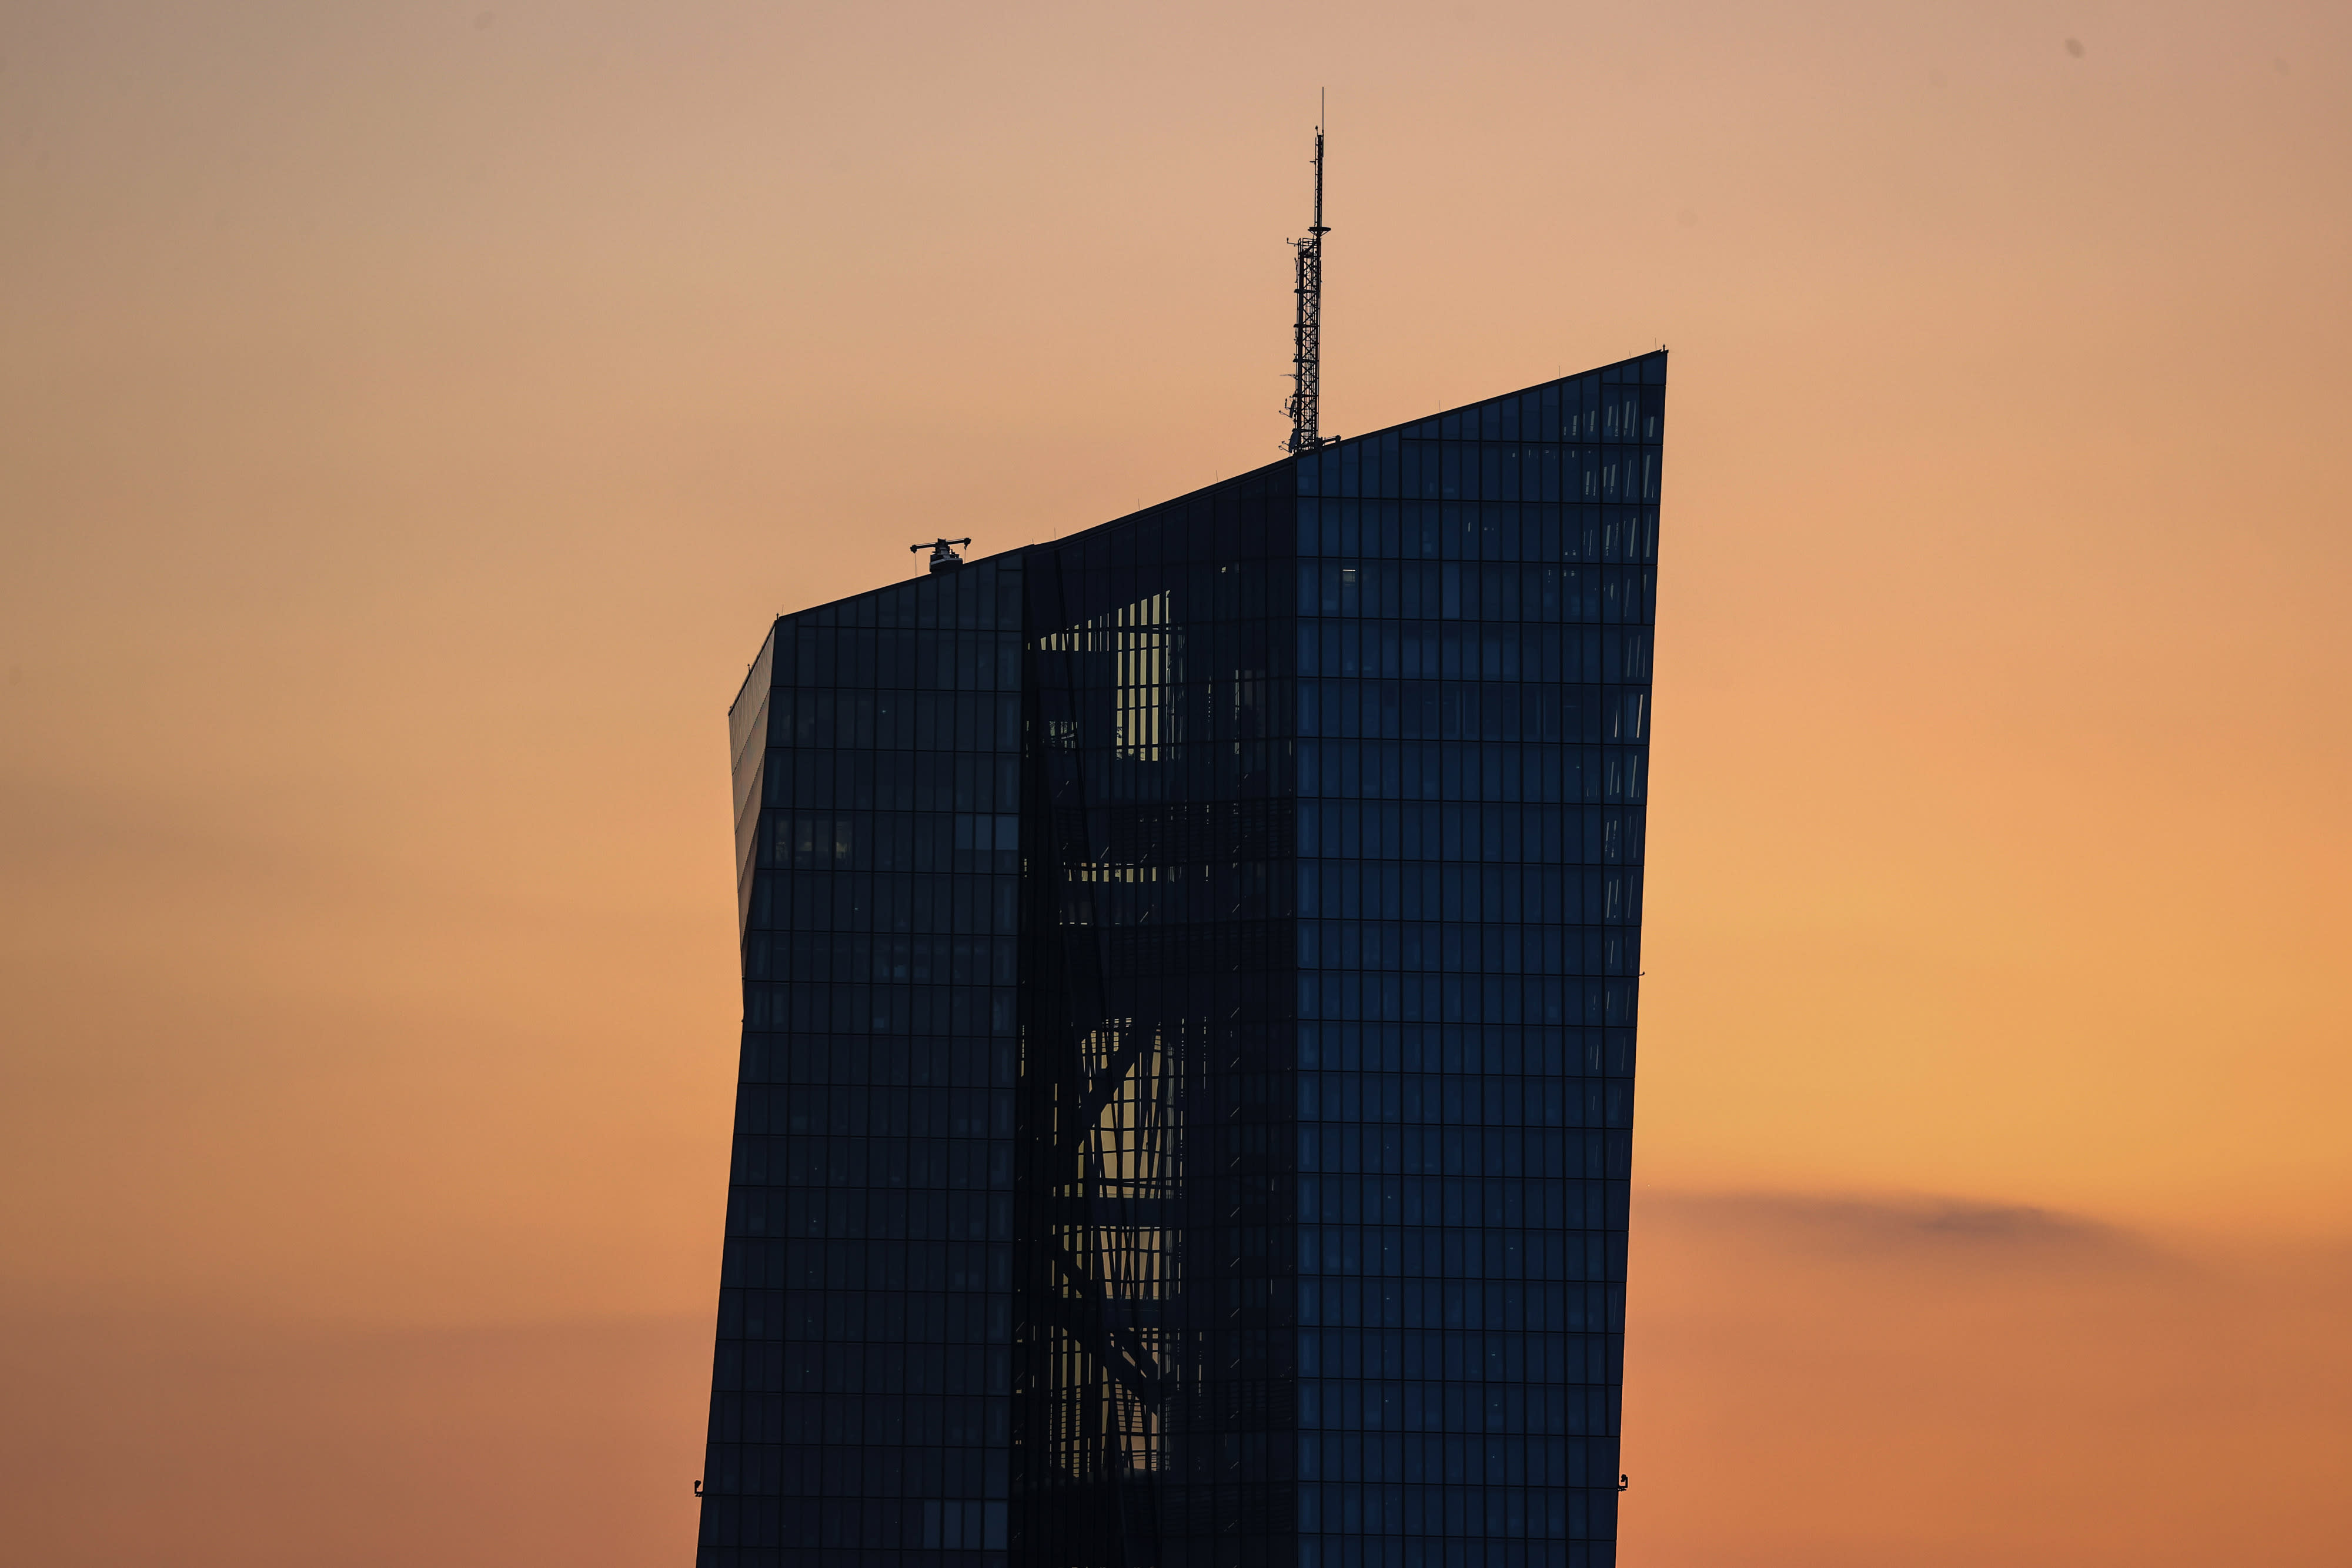 ECB keeps interest rates and bond buying unchanged